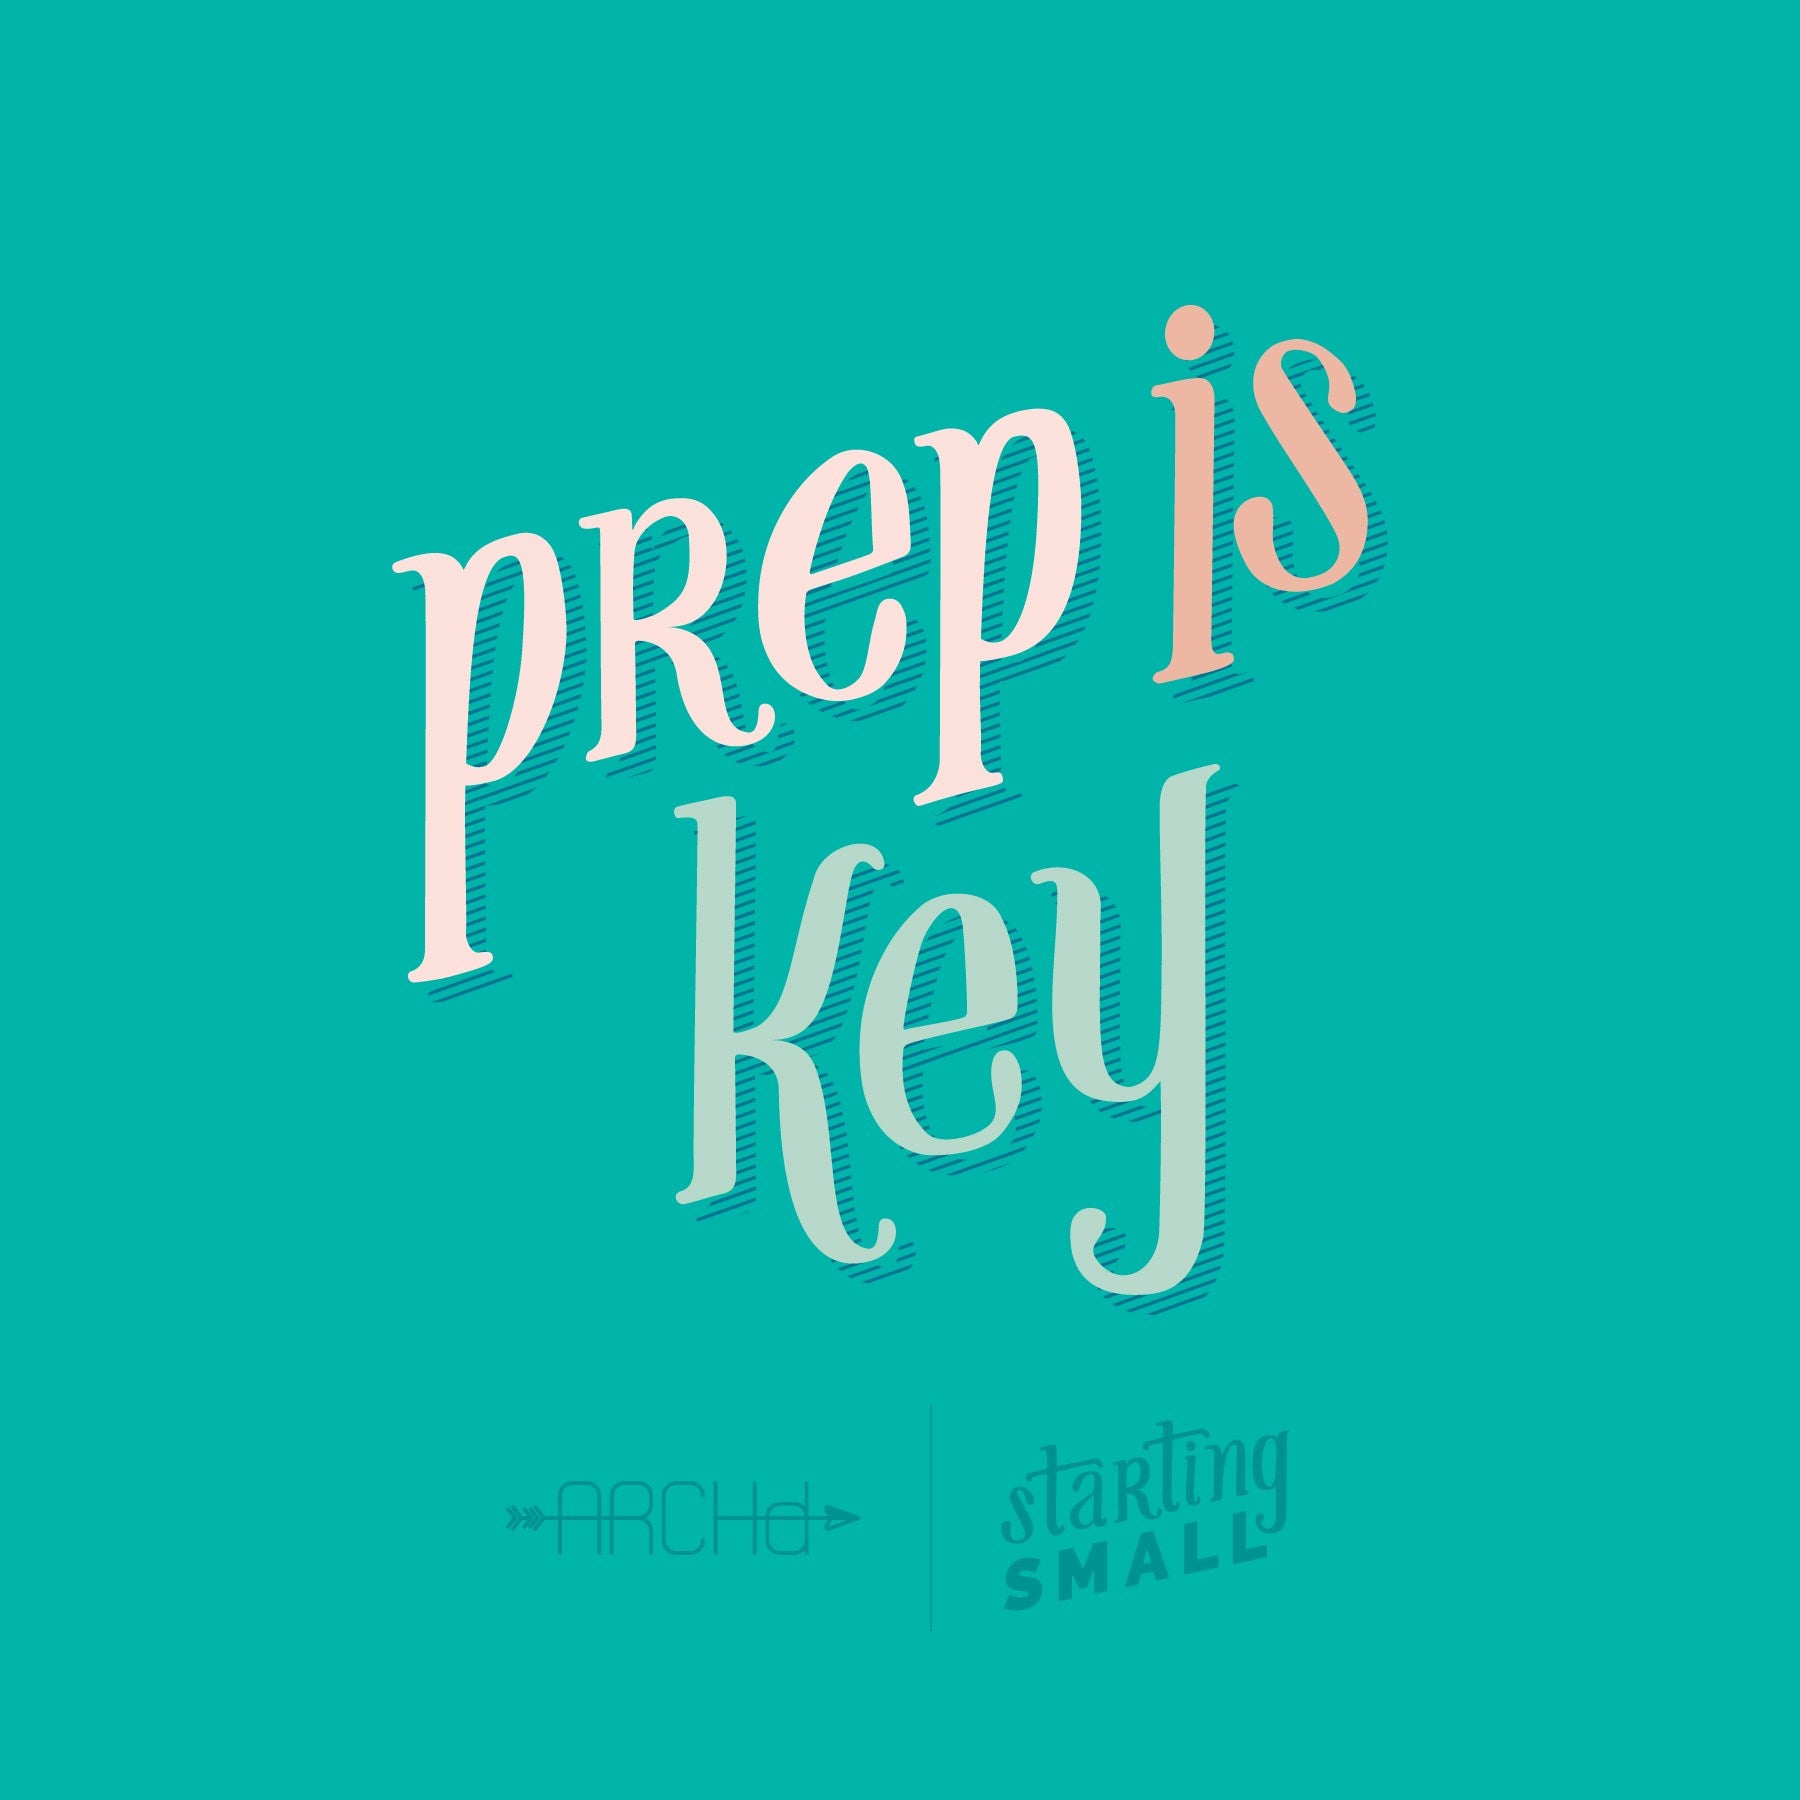 Prep is Key Starting Small a blog series by ARCHd about the Adventures of Starting a Small Business